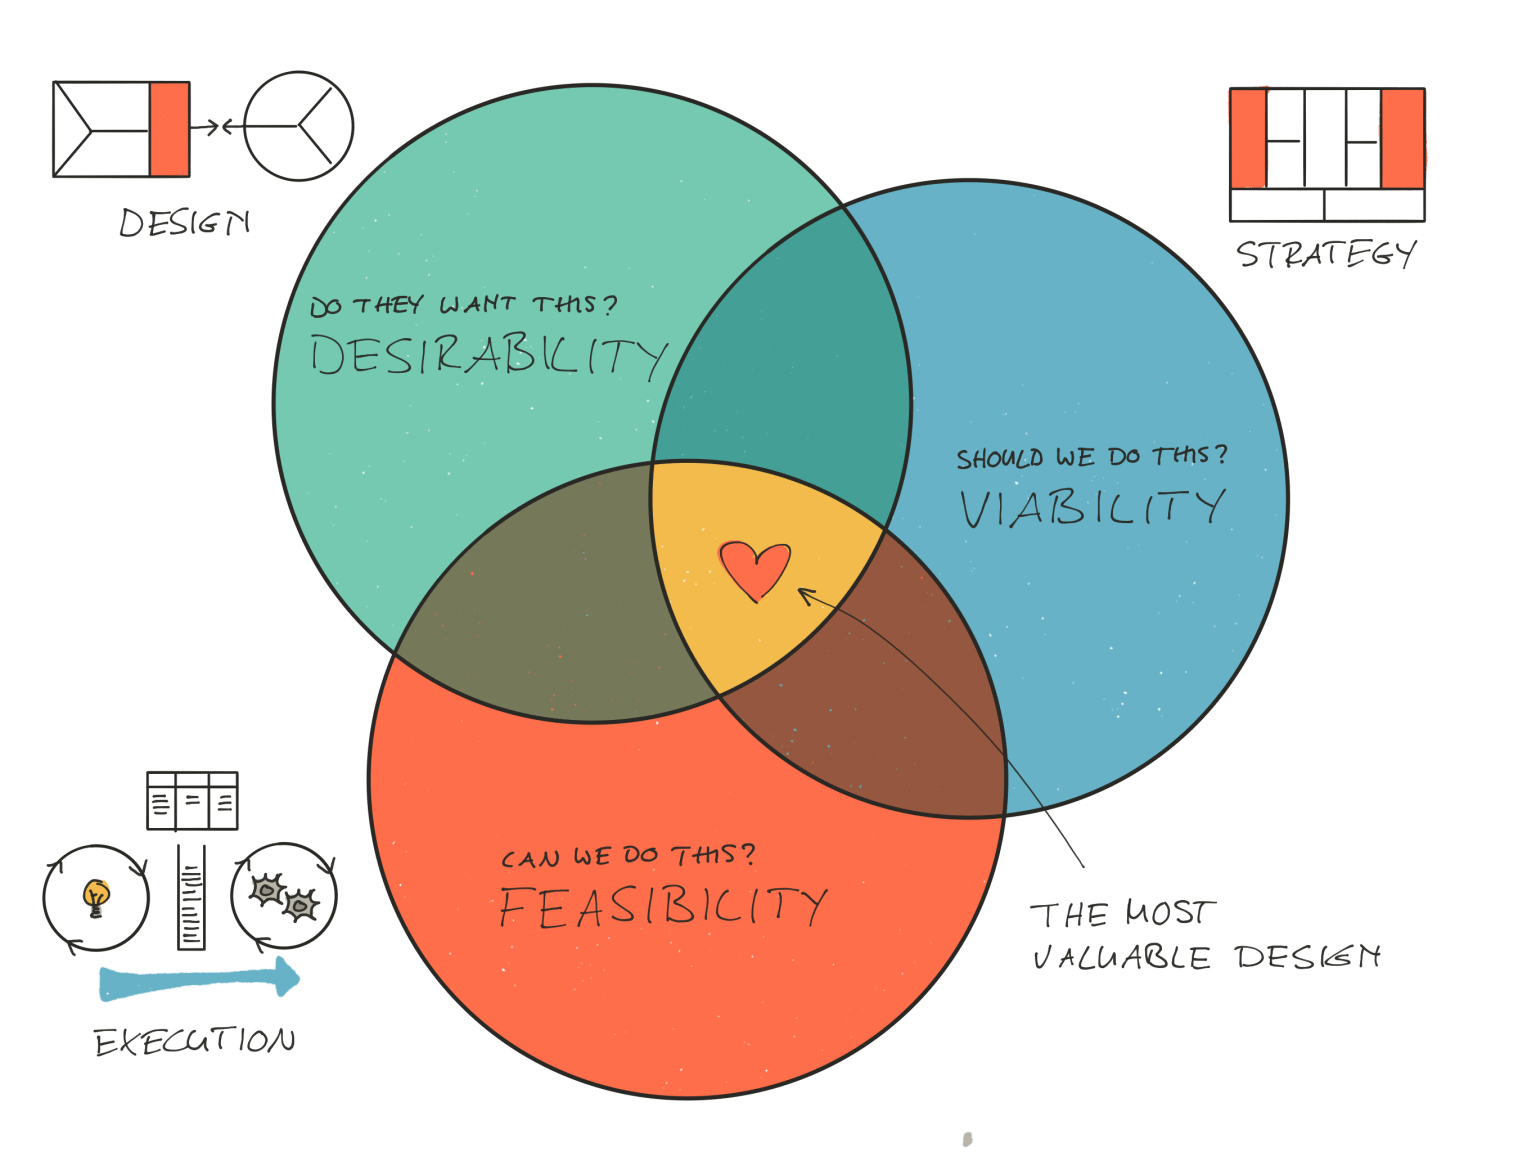 Most valuable design meet the criteria of desirability, viability, and feasibility.